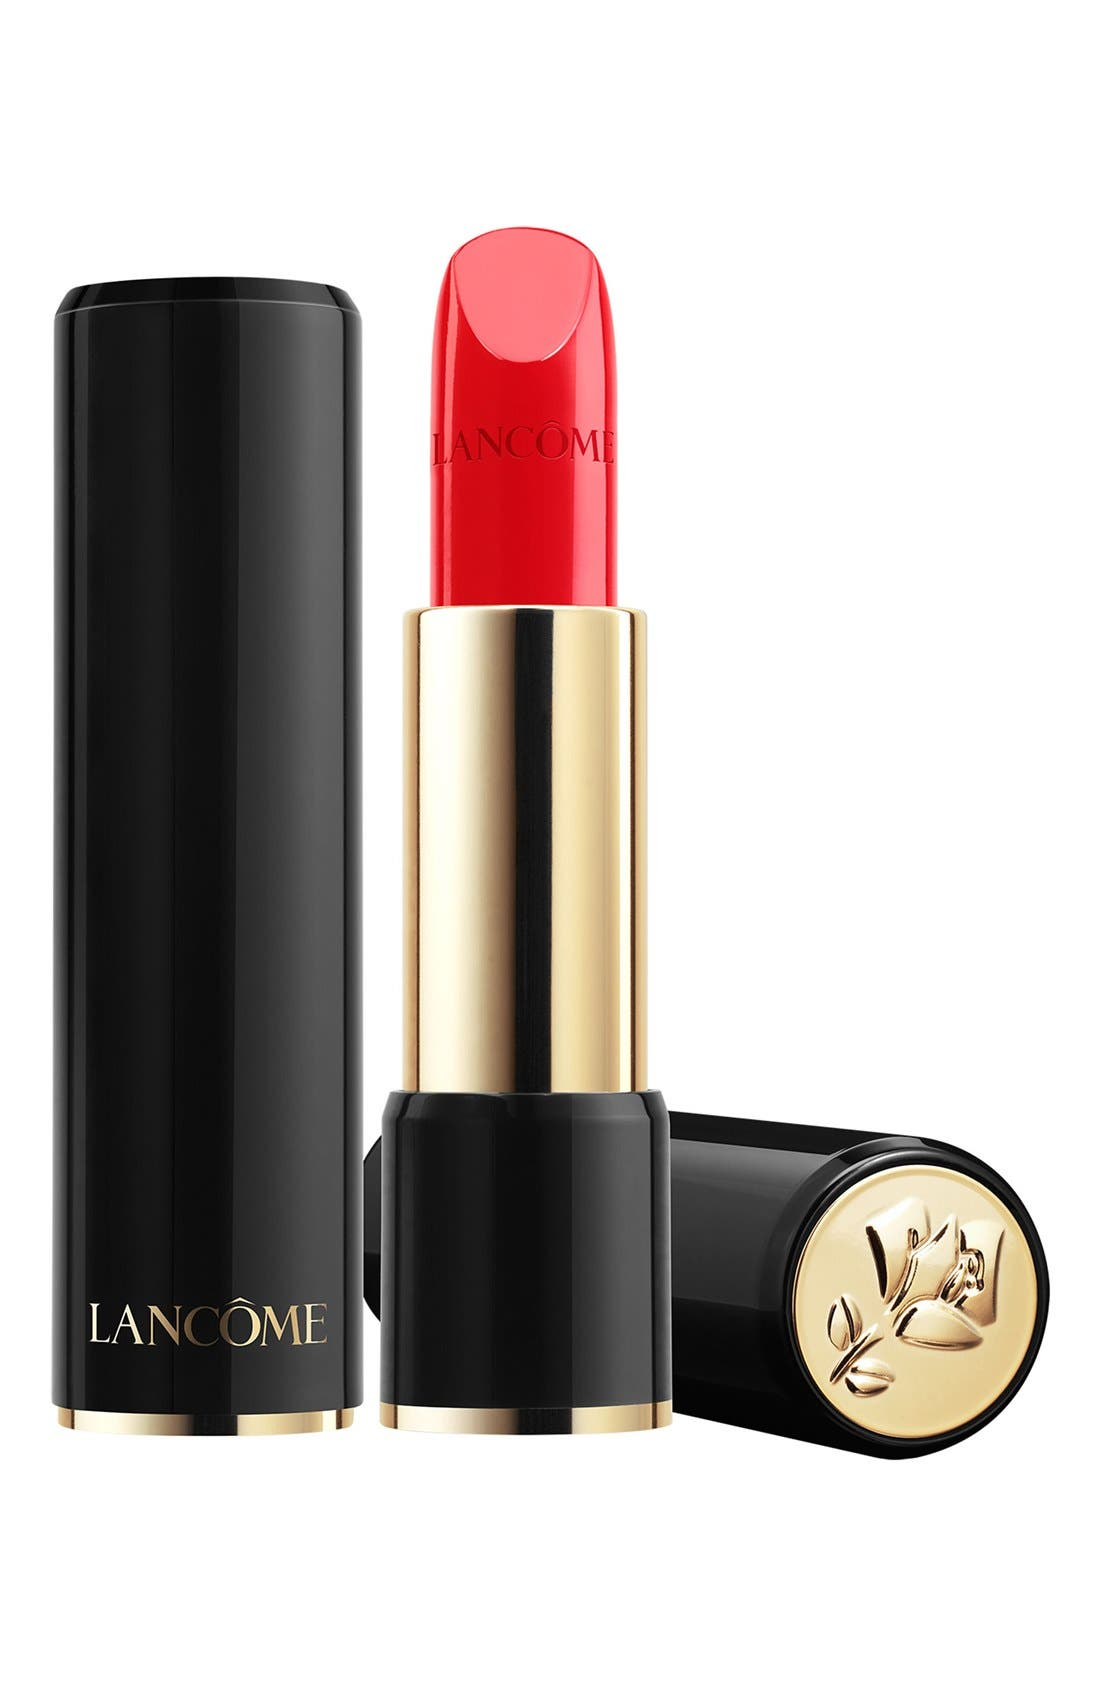 Lancôme L'Absolu Rouge Hydrating Shaping Lip Color